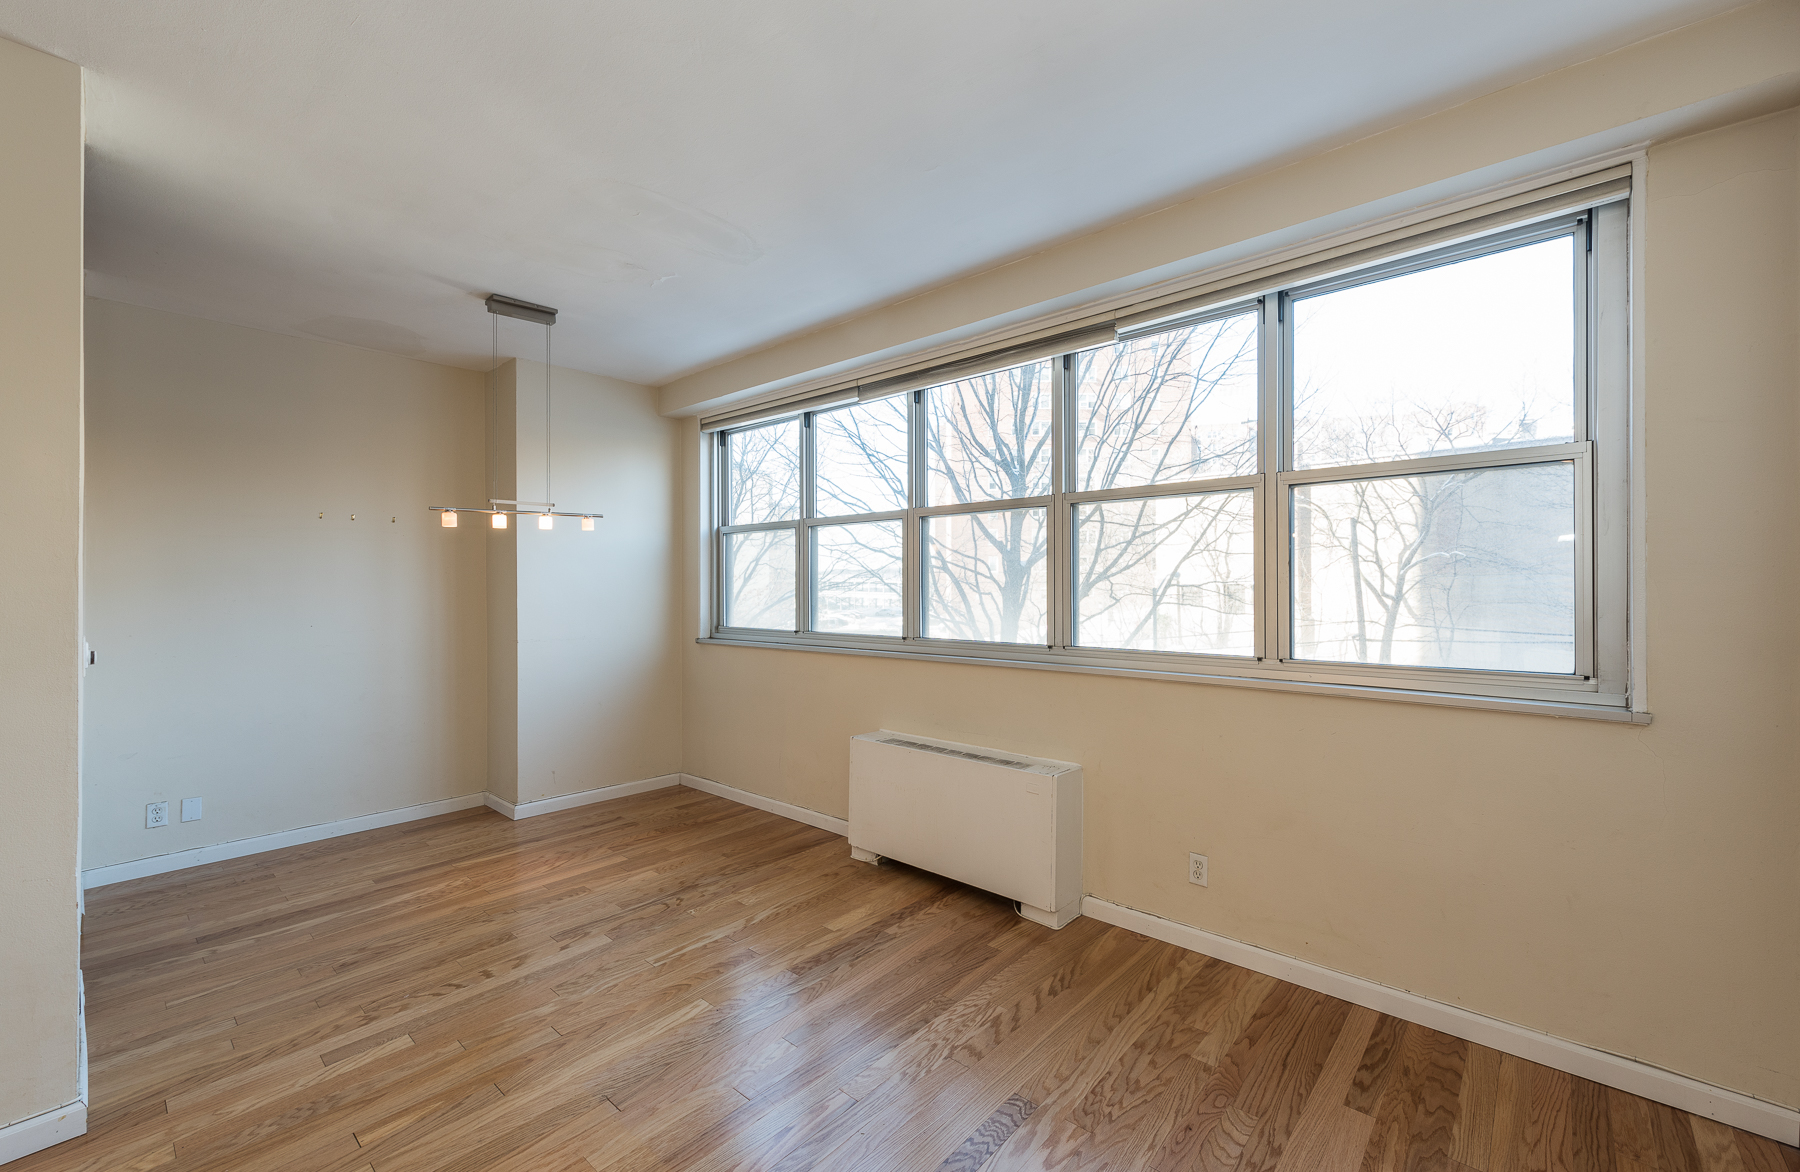 Property For Sale at Spacious 1 BR in Full-Service Building